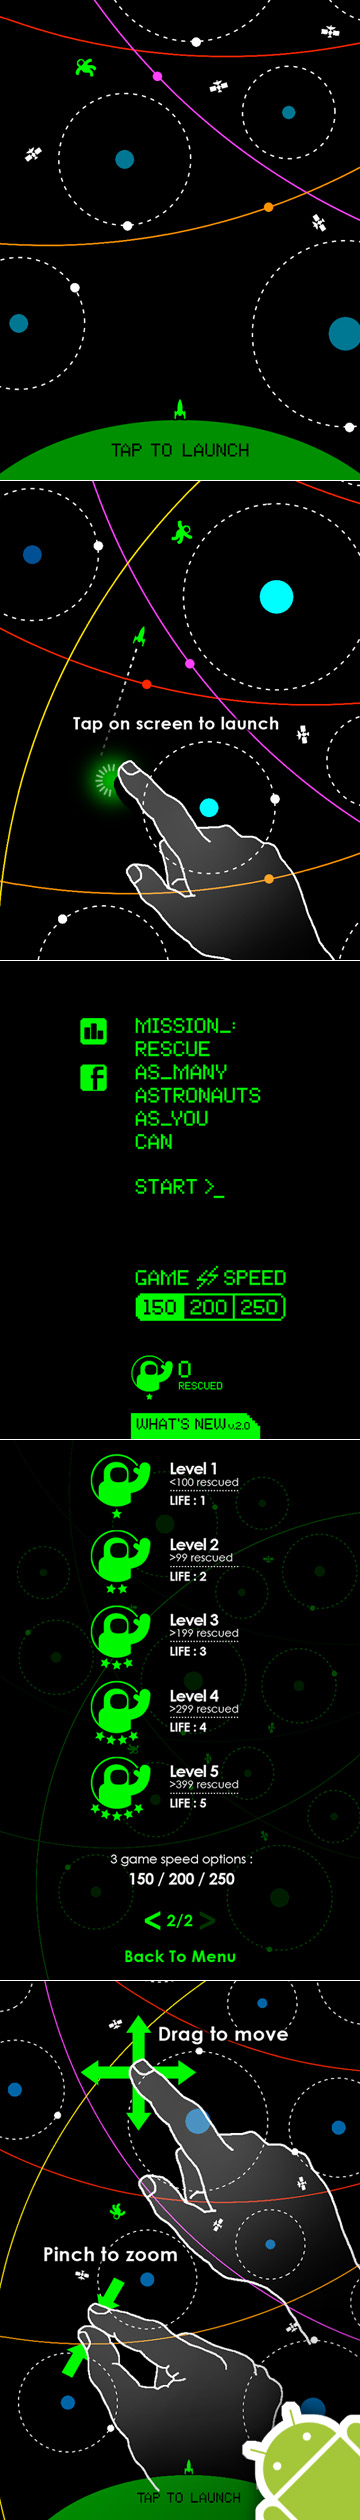 Orbit One // FREE Android game // 8-bit // retro // Timing is everything.